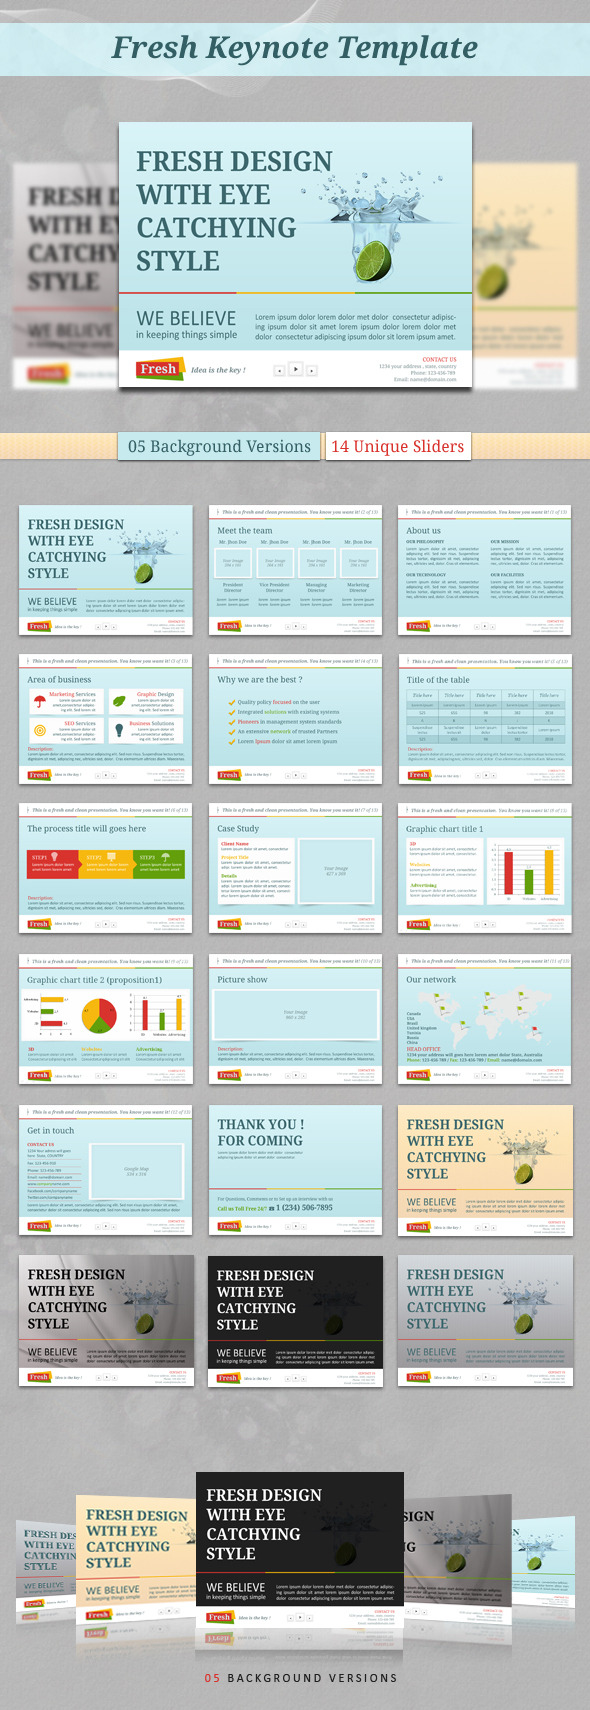 Fresh Keynote Template - Keynote Templates Presentation Templates